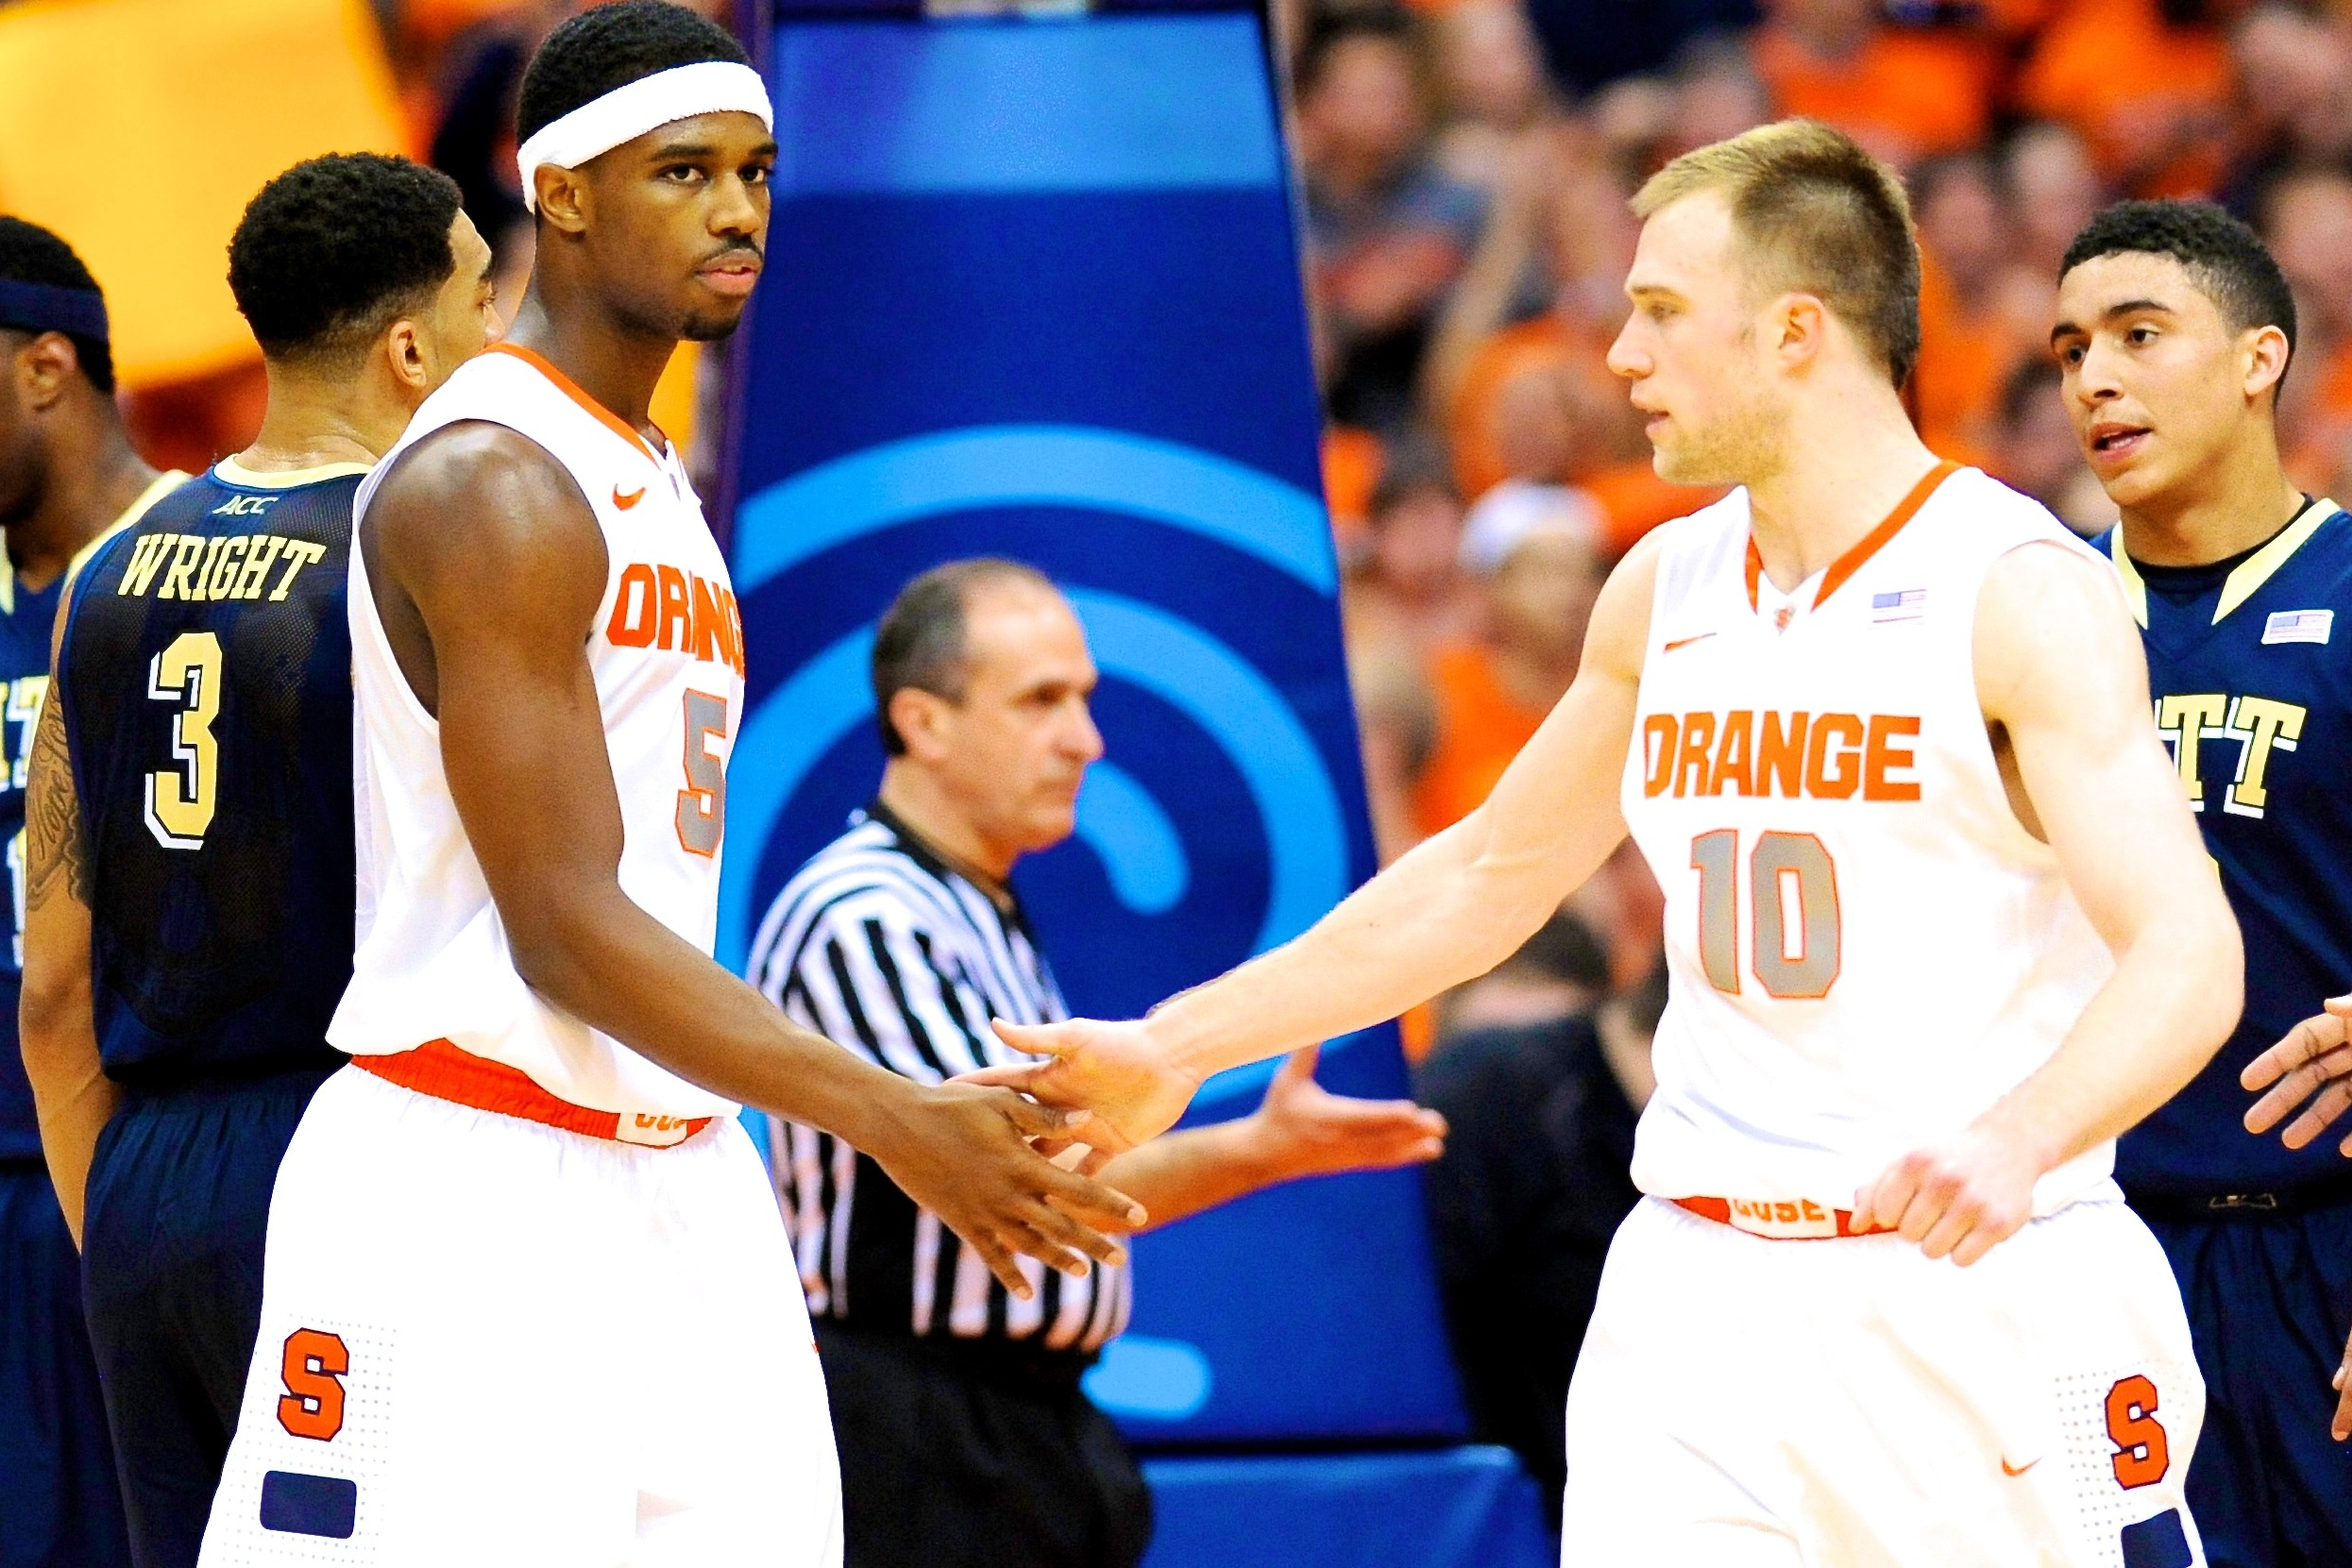 Syracuse Basketball Opportunistic Orange Have That